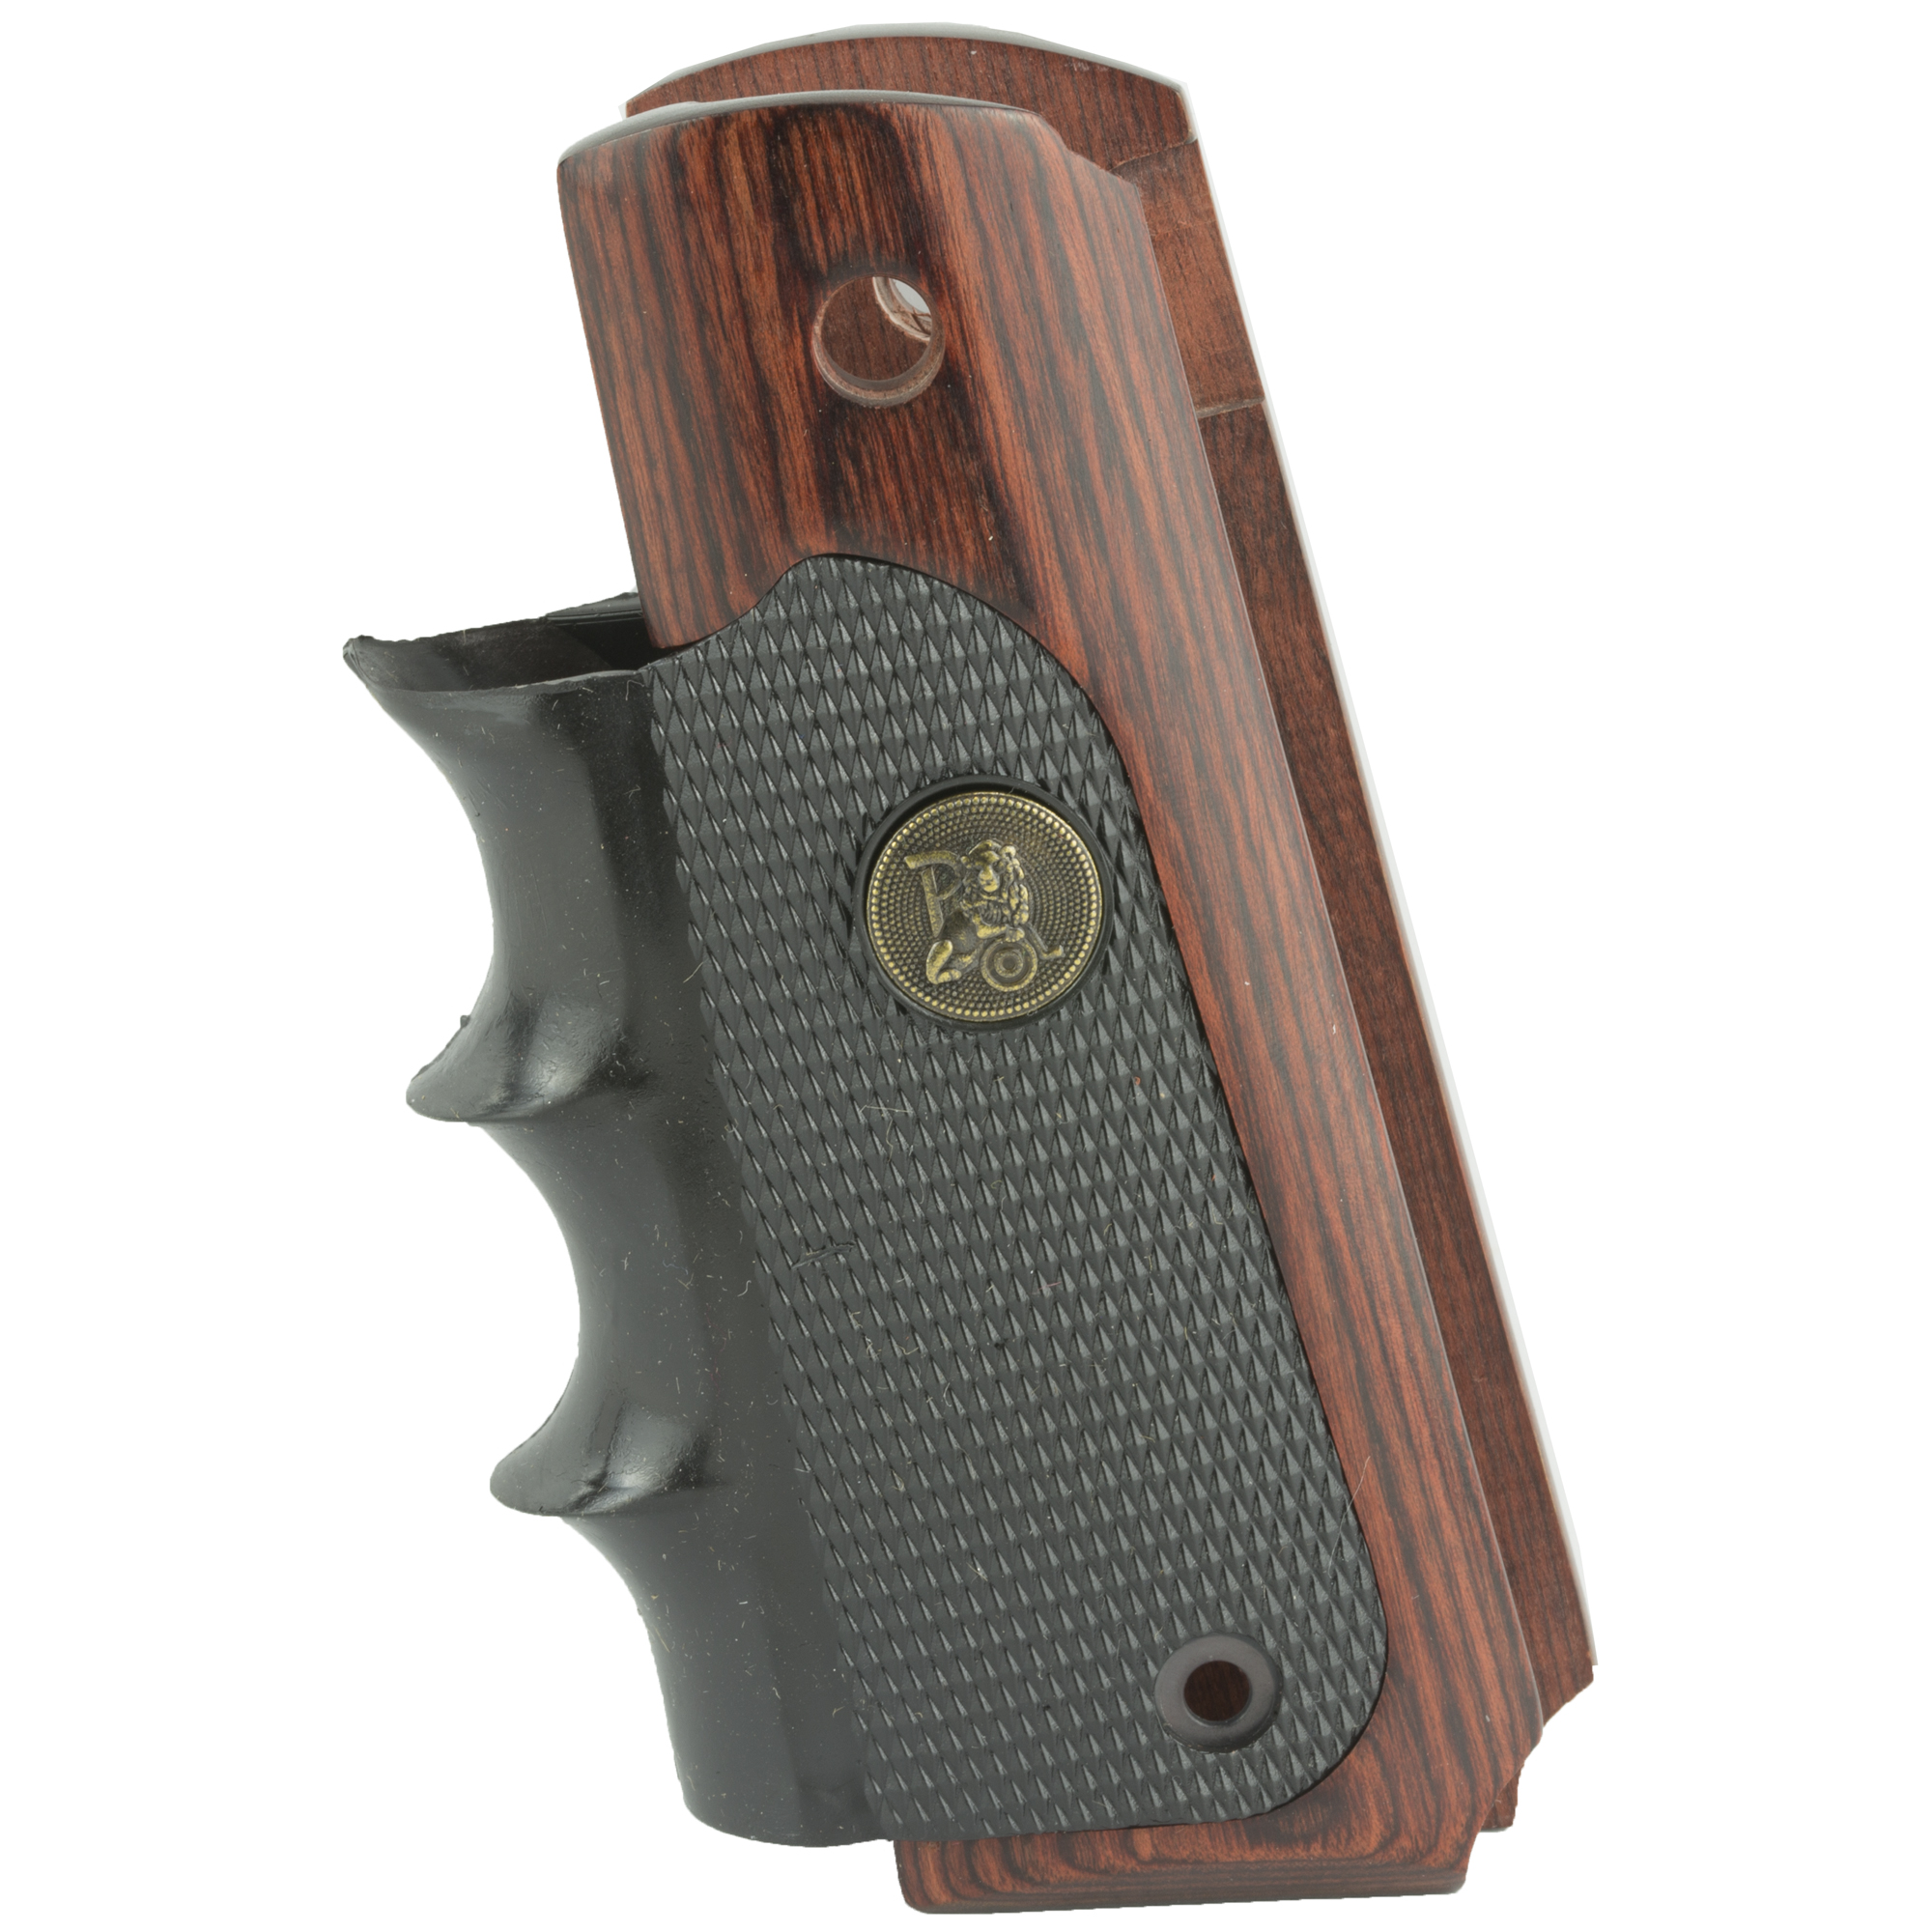 """These are the American Legend grip panels for the Colt 1911. Rugged"""" dual-material grips combine the appearance and feel of real wood with the control and handling benefits of rubber combat grips. Smooth grip panels of attractive Pacwood"""" a rosewood laminate with a durable satin-finish"""" have neatly beveled bottom edges with cutouts for mainspring housing pin. The insert of semi-soft Decelerator(R) neoprene rubber has sharp diamonds molded in the side panels for superior gripping surface"""" wet or dry"""" that won't bite into your hand. Deep"""" molded finger grooves on the frontstrap provide maximum control and comfort. For either right- or left-handed shooters"""" these grips will complement the finest accurizing job or combat alterations. Installation requires no alterations to gun."""